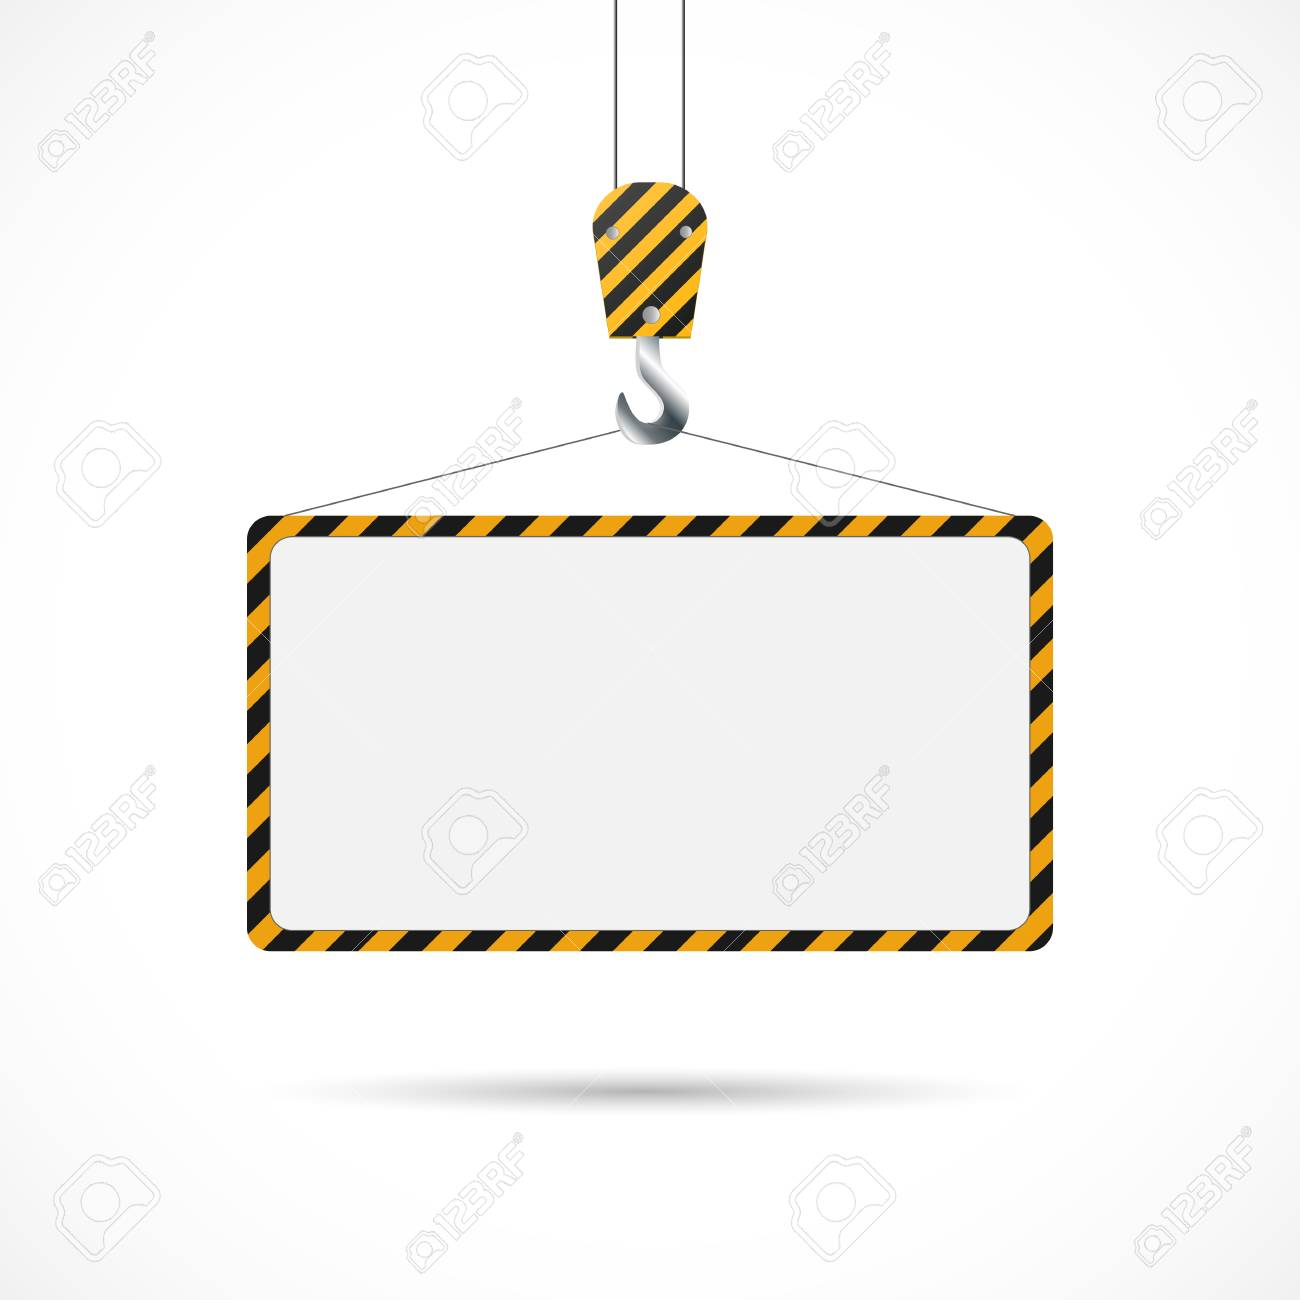 Illustration of a construction road sign and hook isolated on a white background. - 97101985